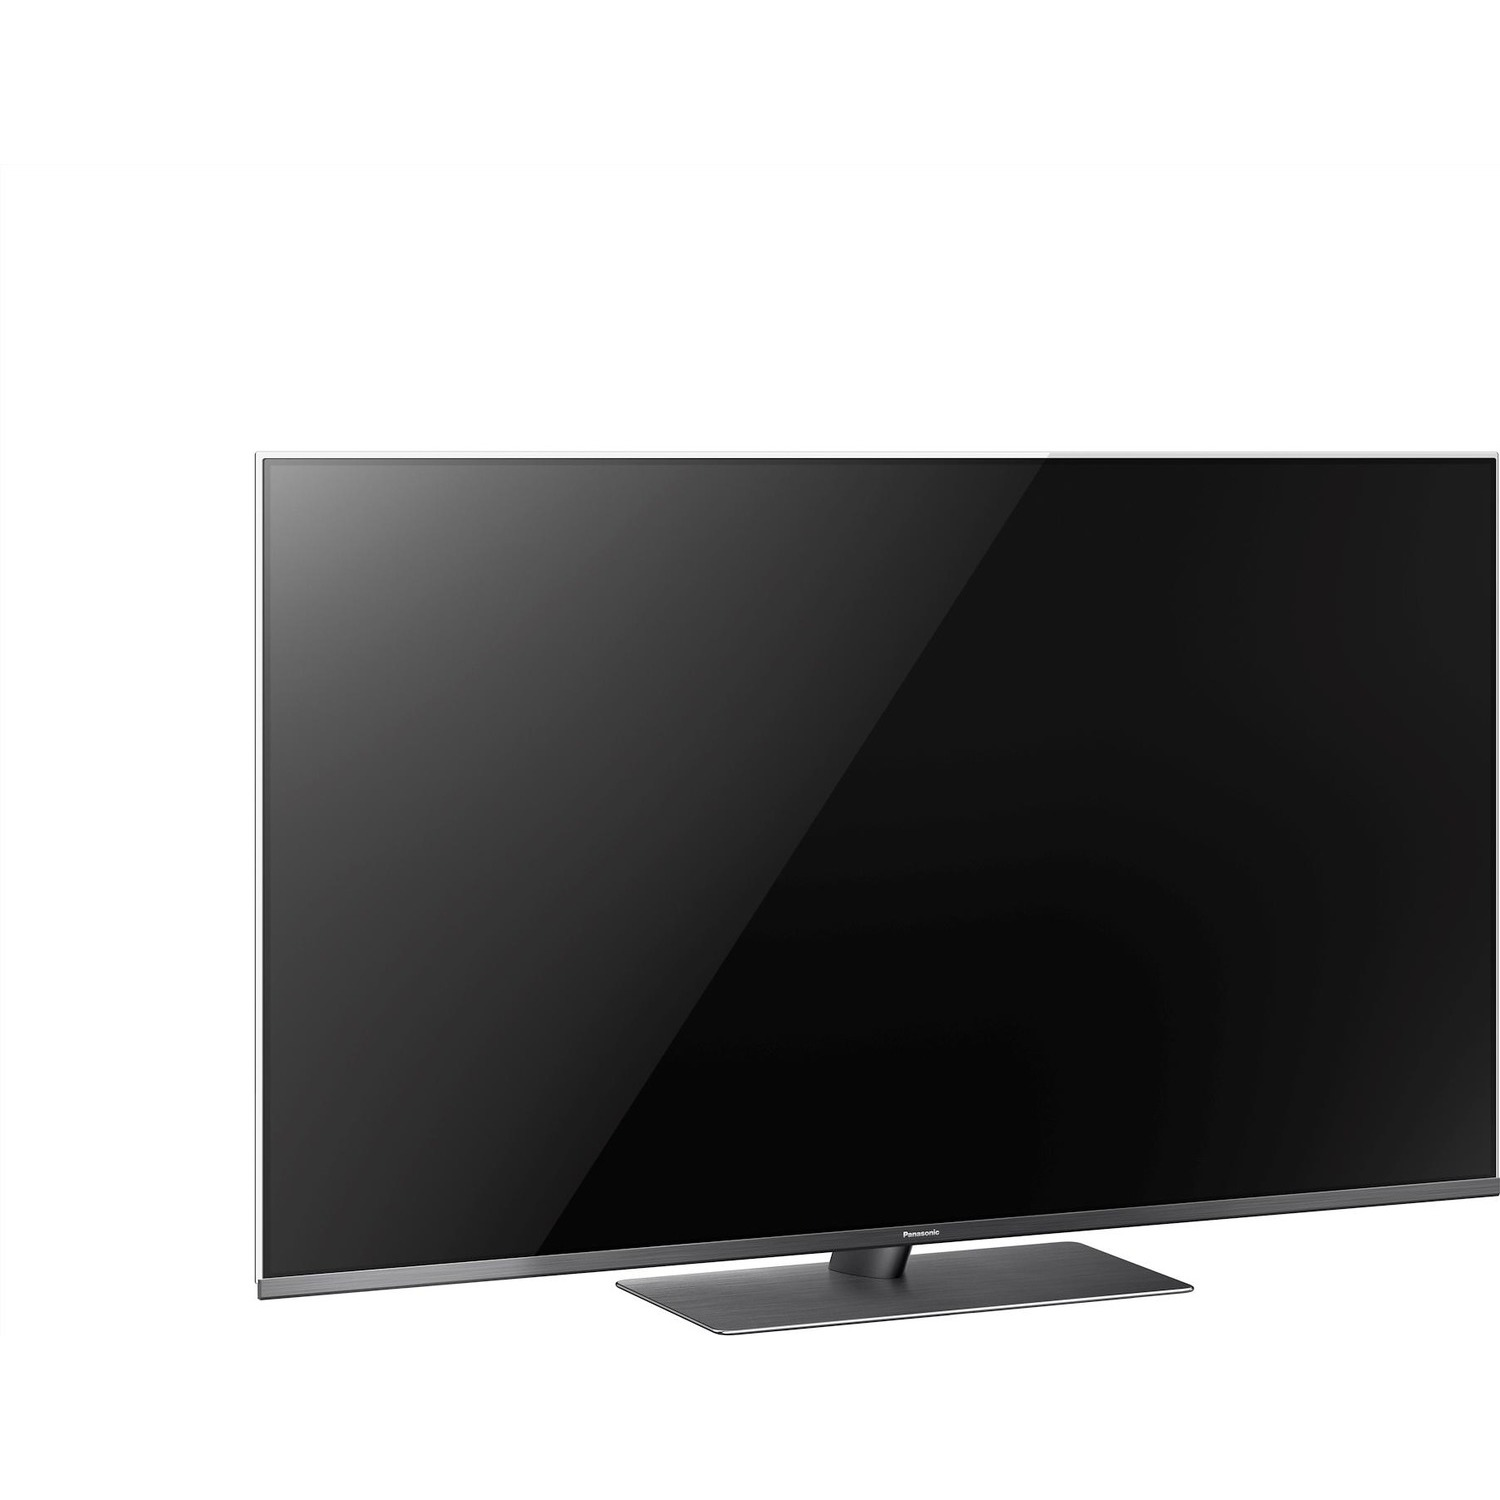 Immagine per TV LED Smart 4K UHD Panasonic 55FX780 da DIMOStore